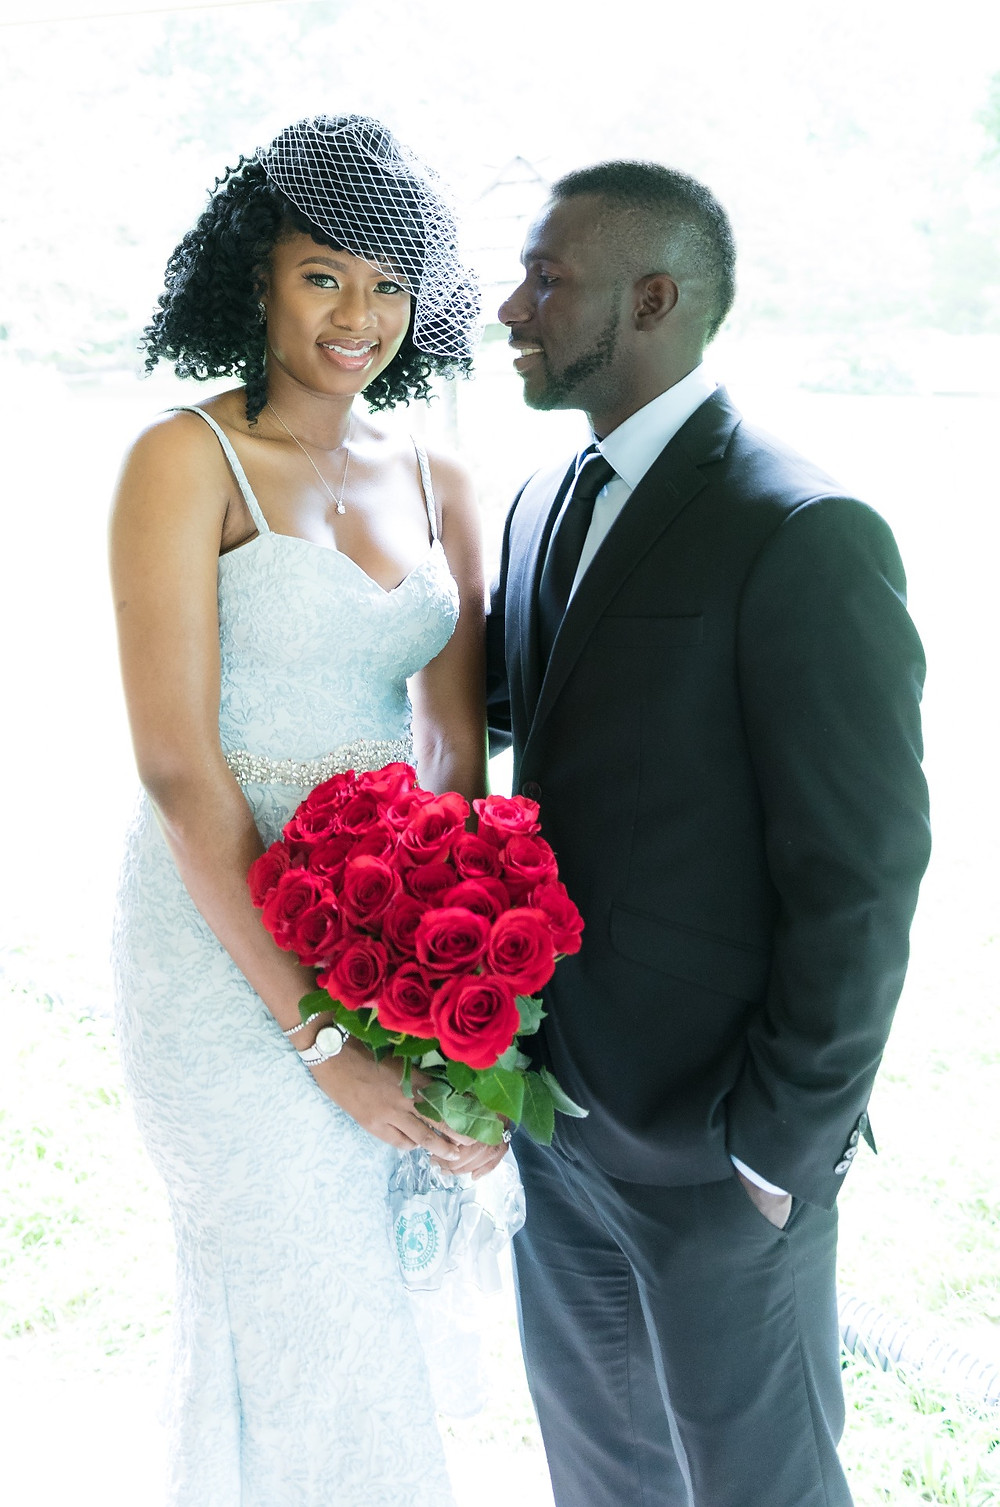 Engagement session with roses at Middlegate Manor in Cabell's Mill.